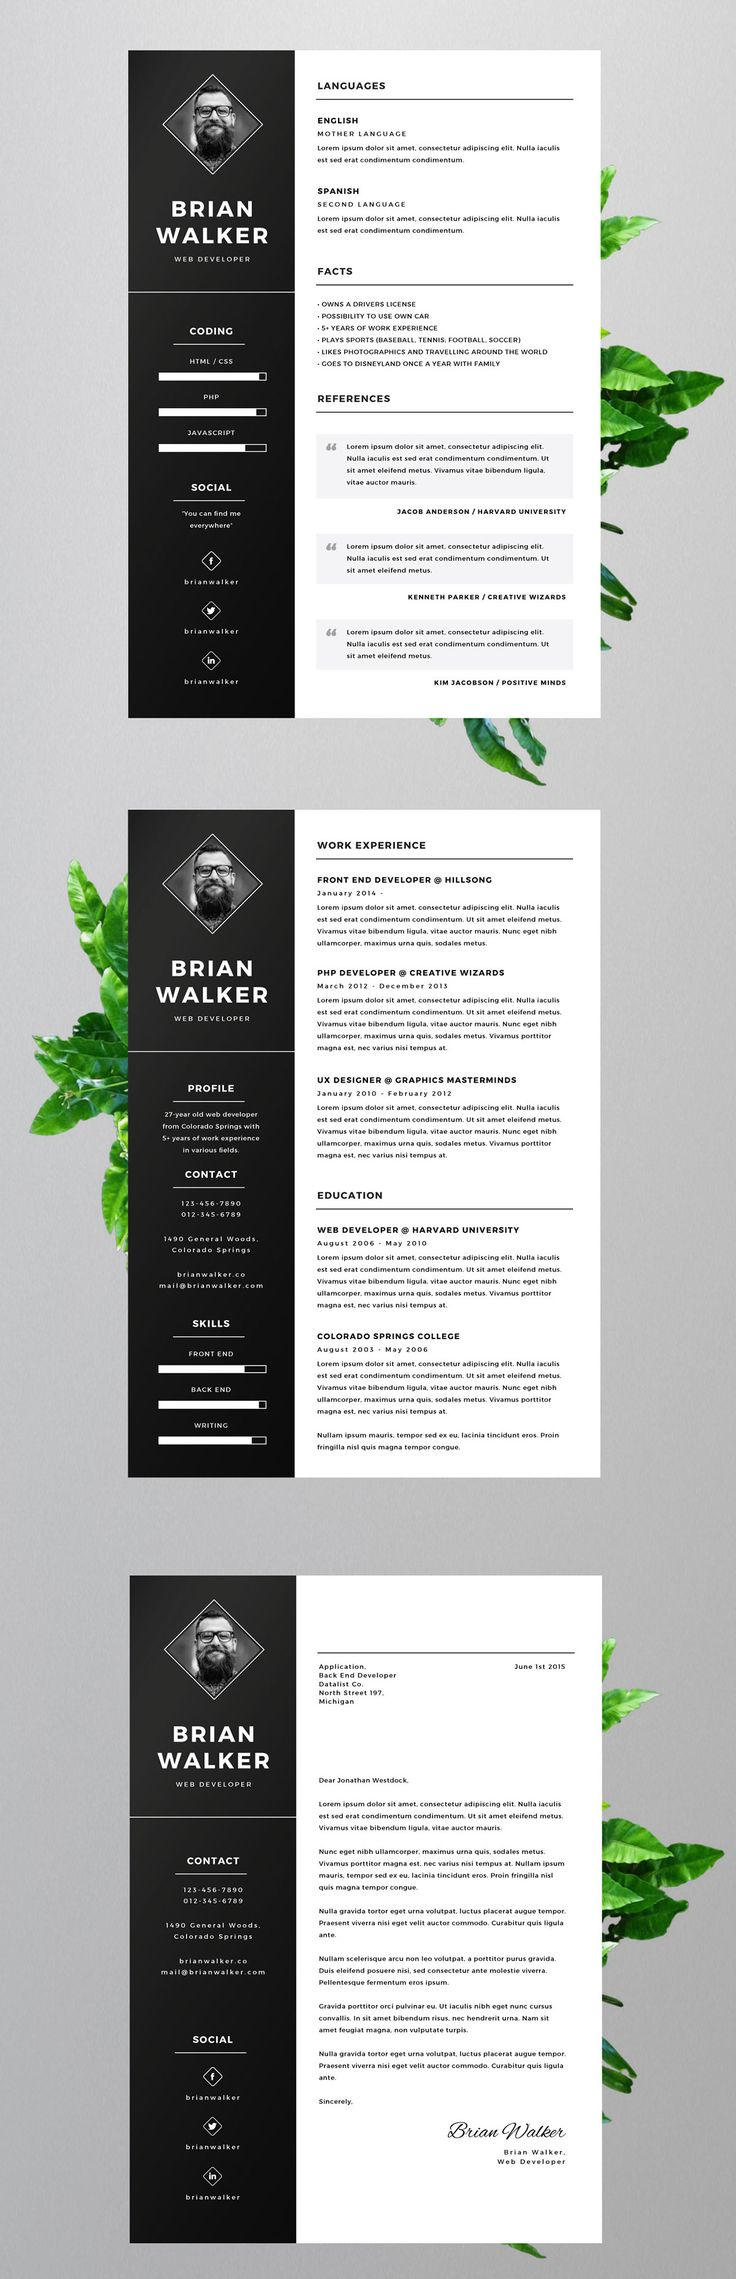 download job resume format%0A Free resume template for Microsoft Word  Adobe Photoshop and Adobe  Illustrator  Free for personal